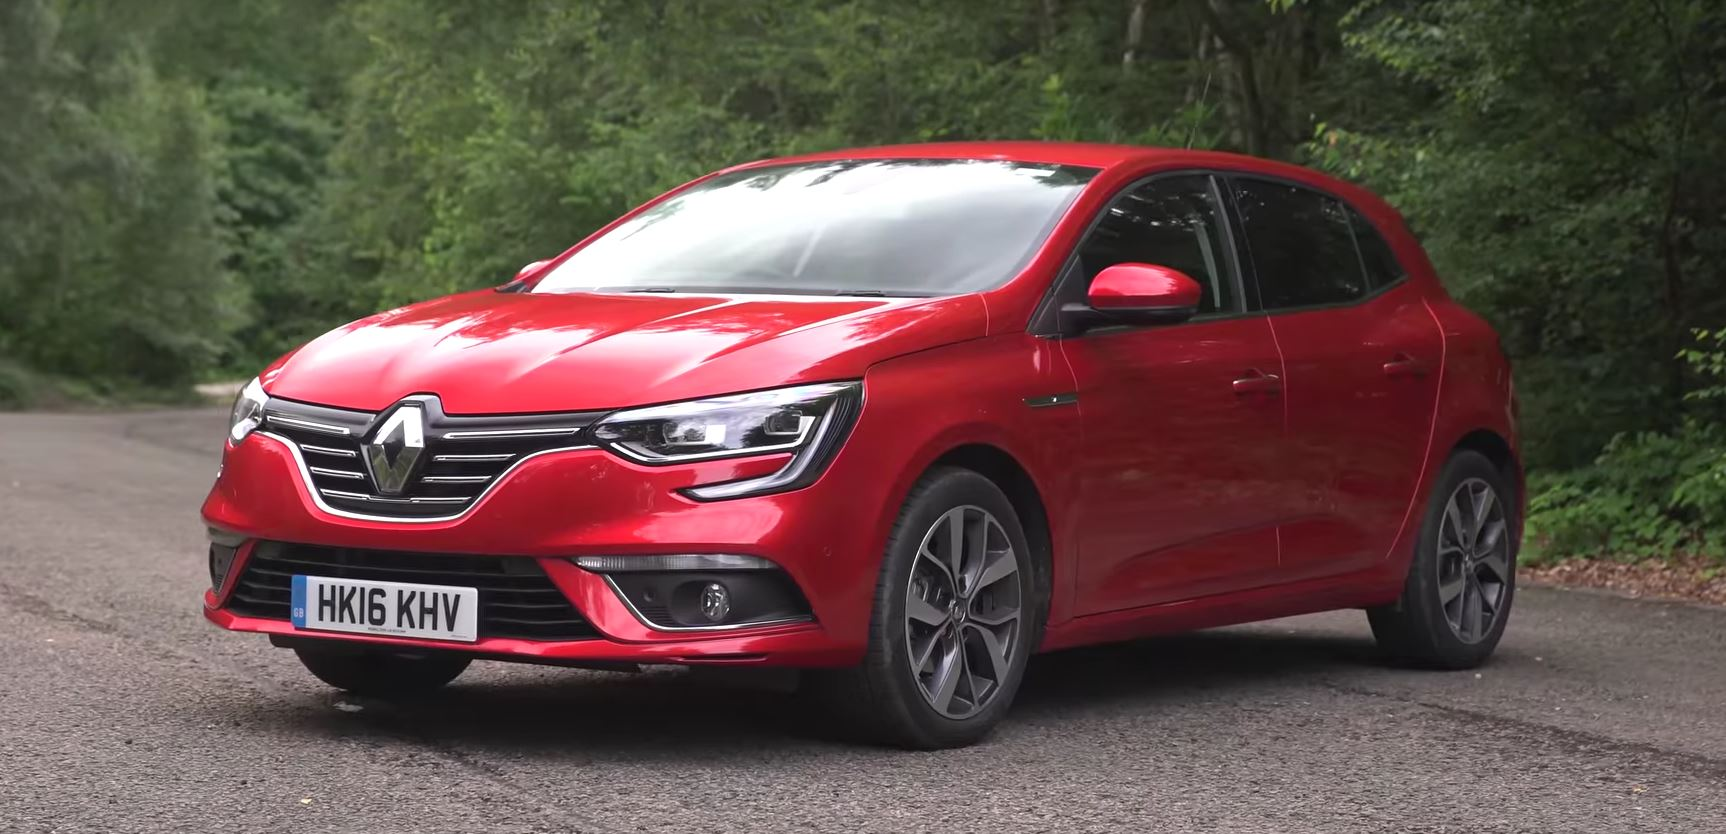 first 2016 renault megane uk review compares it to megan fox autoevolution. Black Bedroom Furniture Sets. Home Design Ideas